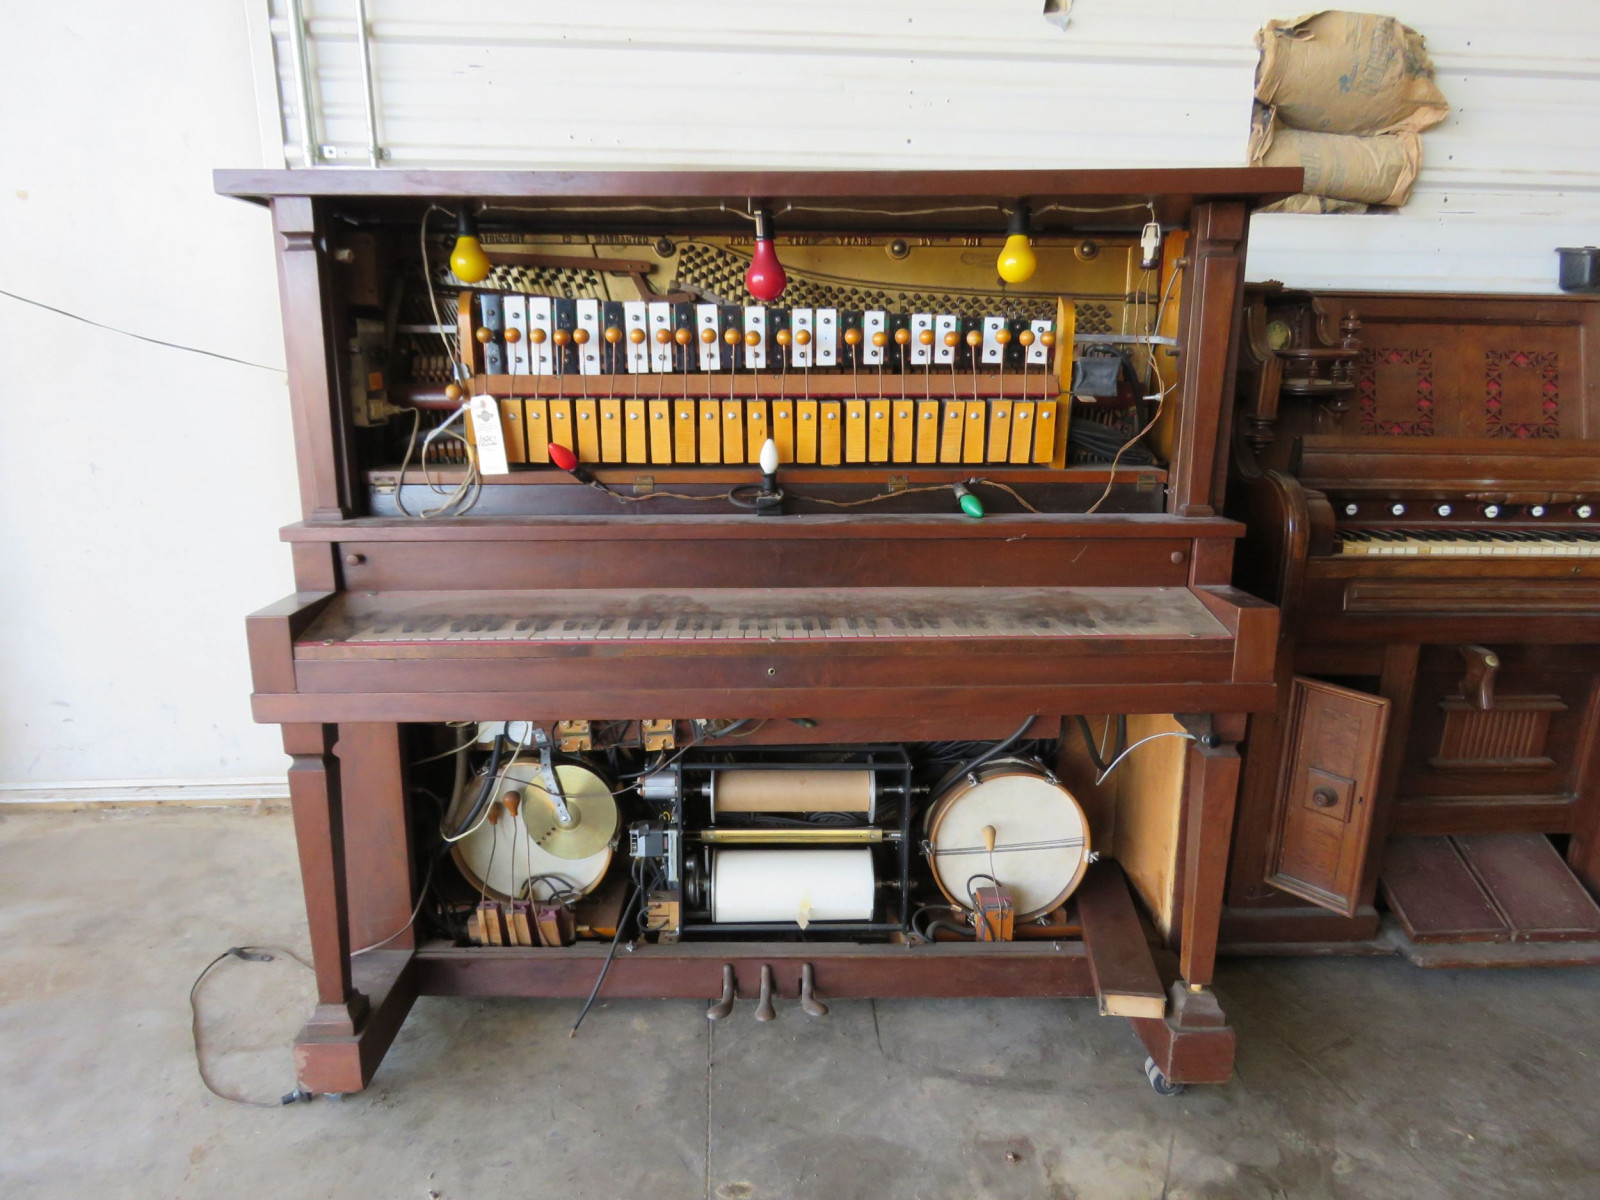 H-C Bay Company Player Piano for project or parts - Image 1